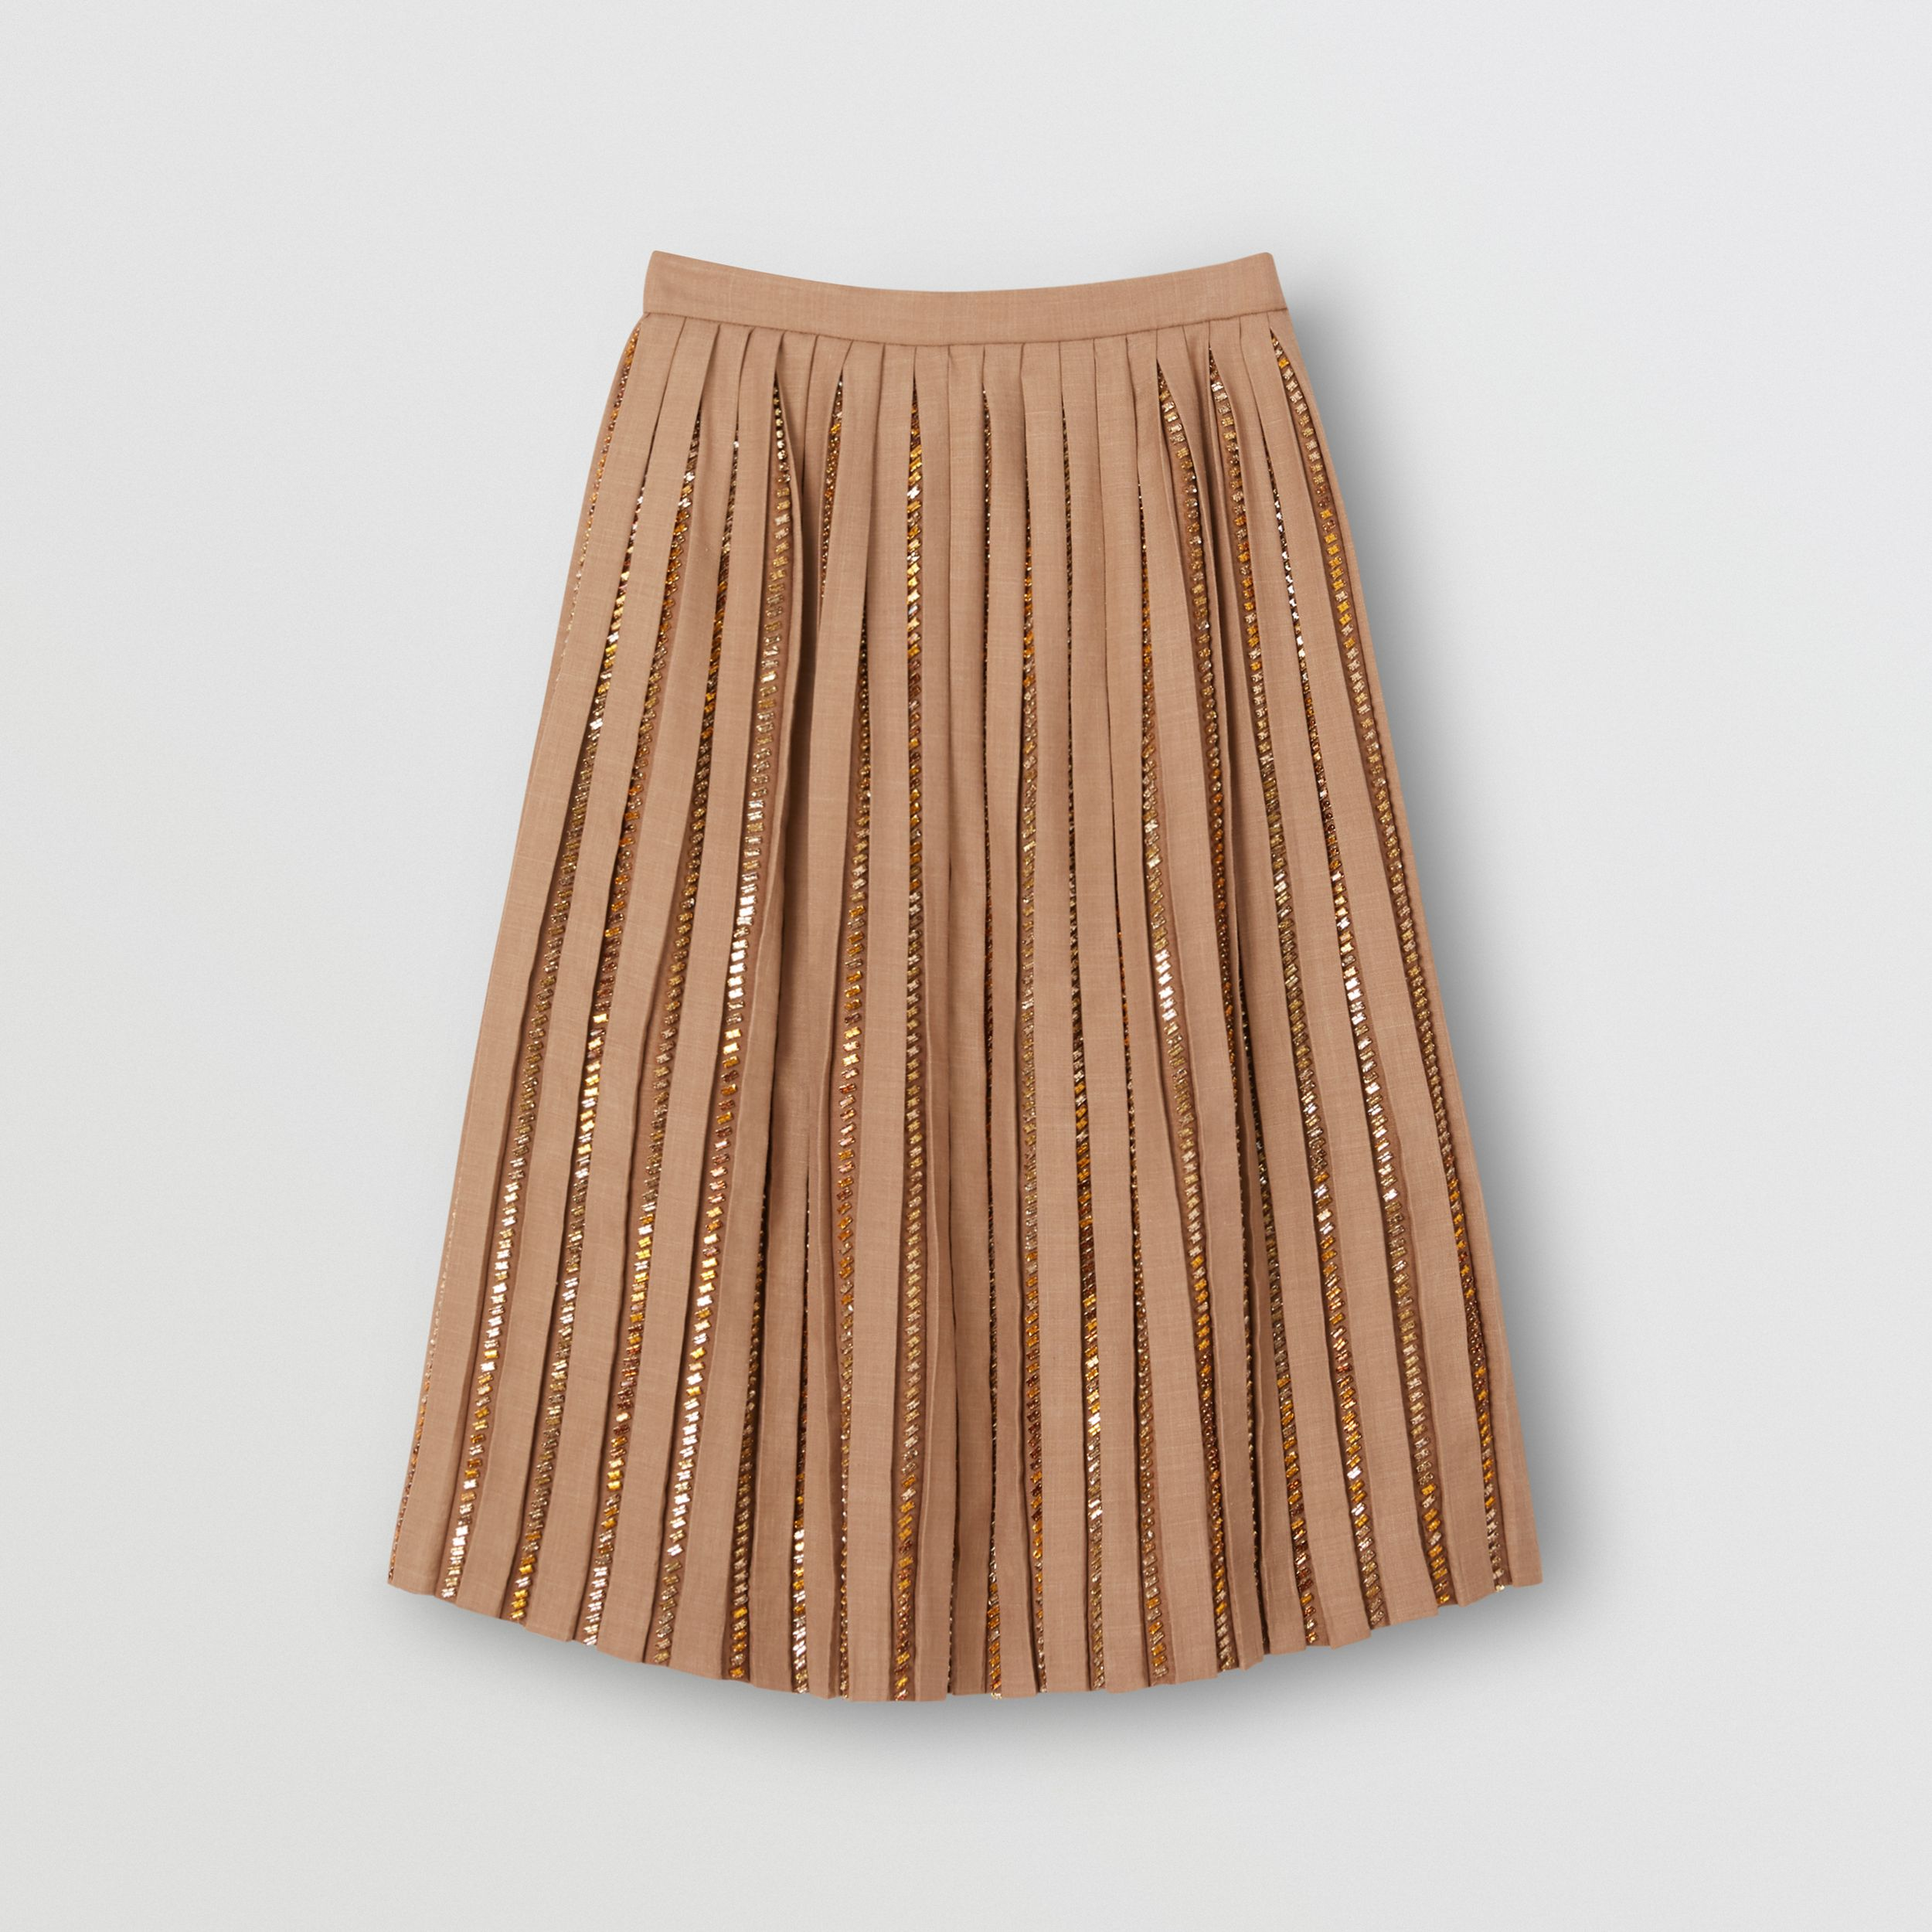 Crystal Detail Plissé Soleil Wool Silk Blend Skirt in Biscuit - Women | Burberry - 4